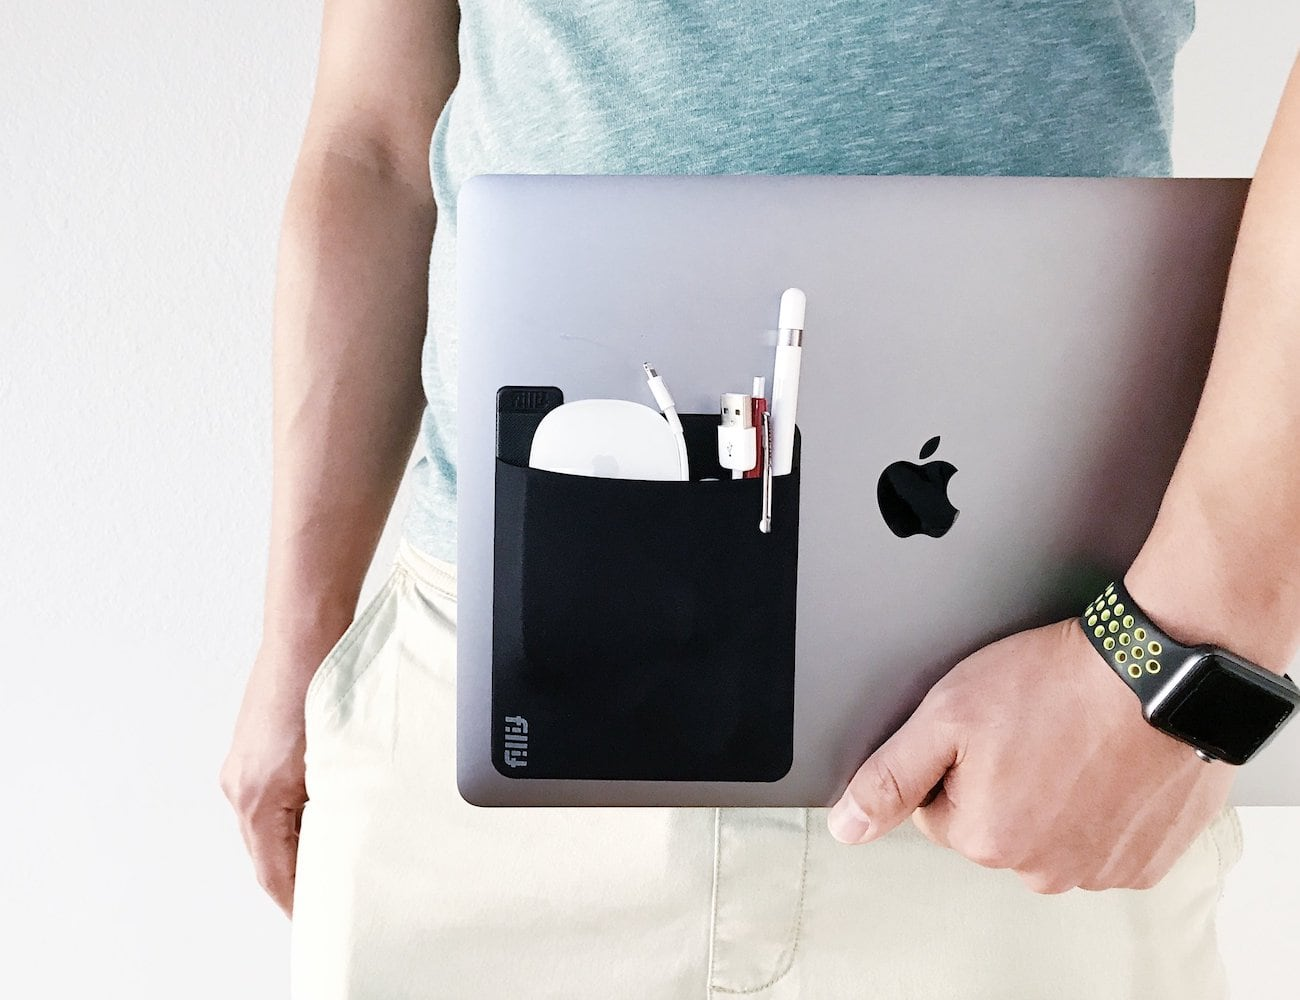 Fillit Pocket Reusable Adhesive Pocket Storage helps you carry extra items with your computer